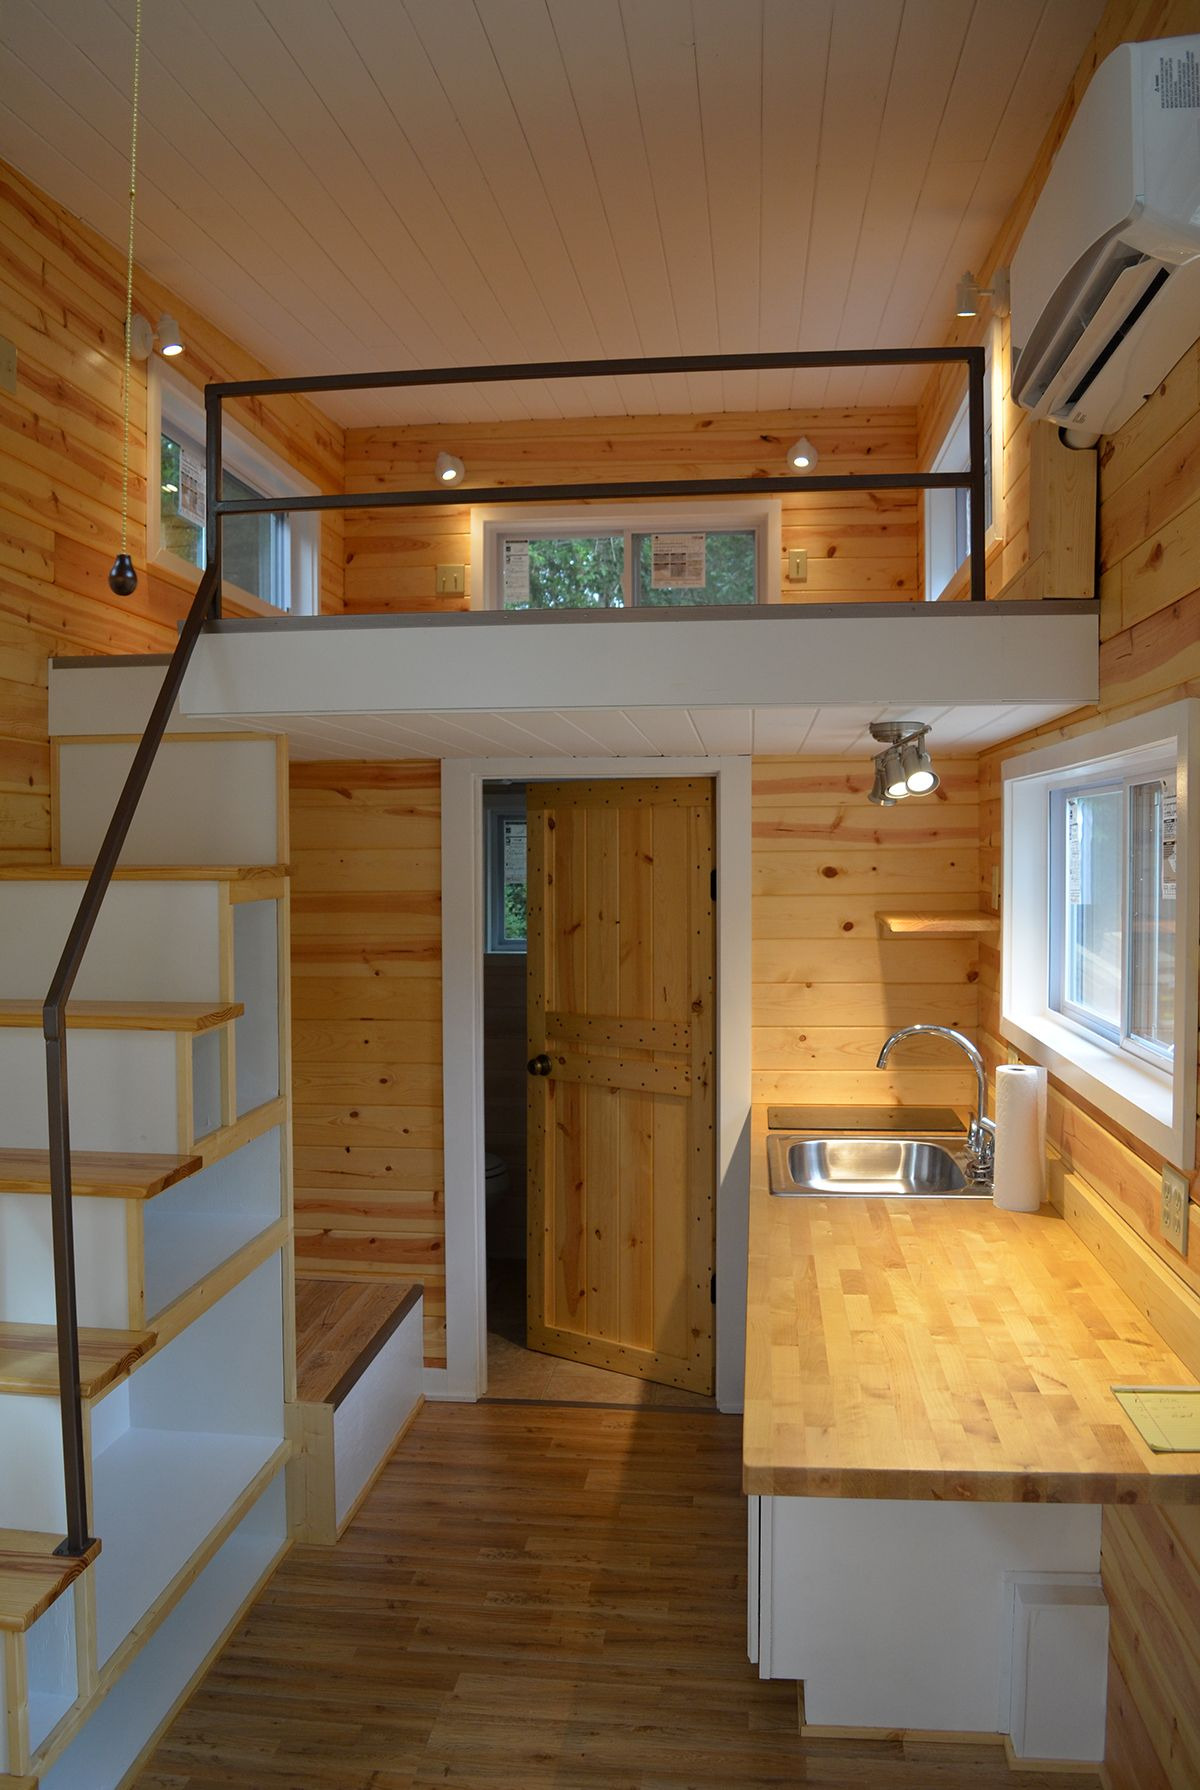 Tiny House Plans for Sale Fresh Functional Tiny House Tiny House for Sale In Opp Alabama